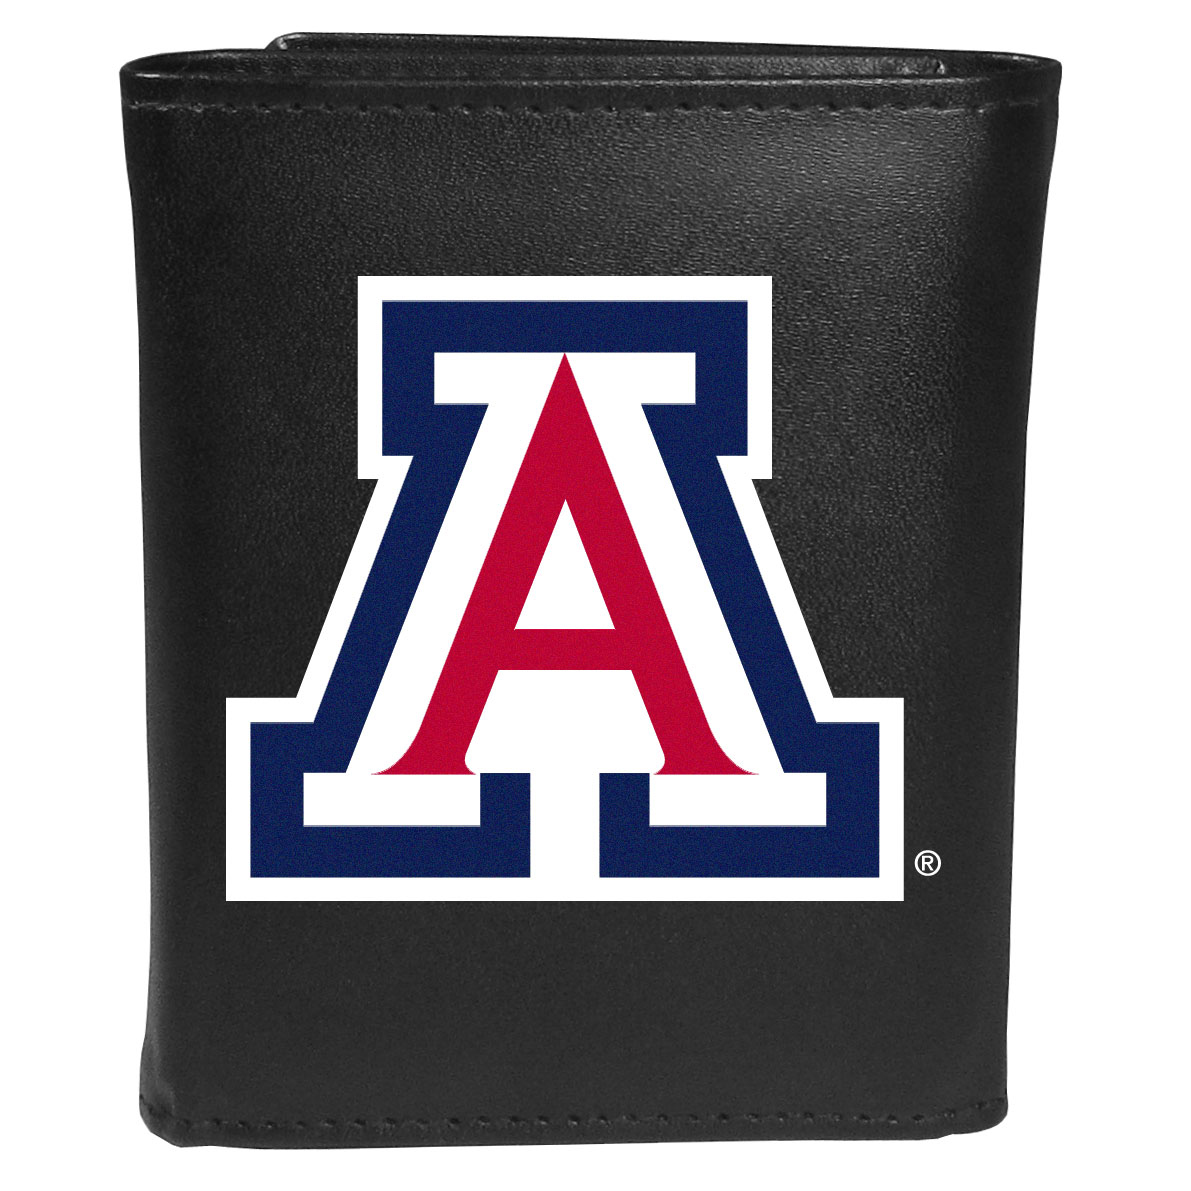 Arizona Wildcats Leather Tri-fold Wallet, Large Logo - Our classic fine leather tri-fold wallet is meticulously crafted with genuine leather that will age beautifully so you will have a quality wallet for years to come. This is fan apparel at its finest. The wallet is packed with organizational  features; lots of credit card slots, large billfold pocket, and a window ID slot. The front of the wallet features an extra large Arizona Wildcats printed logo.